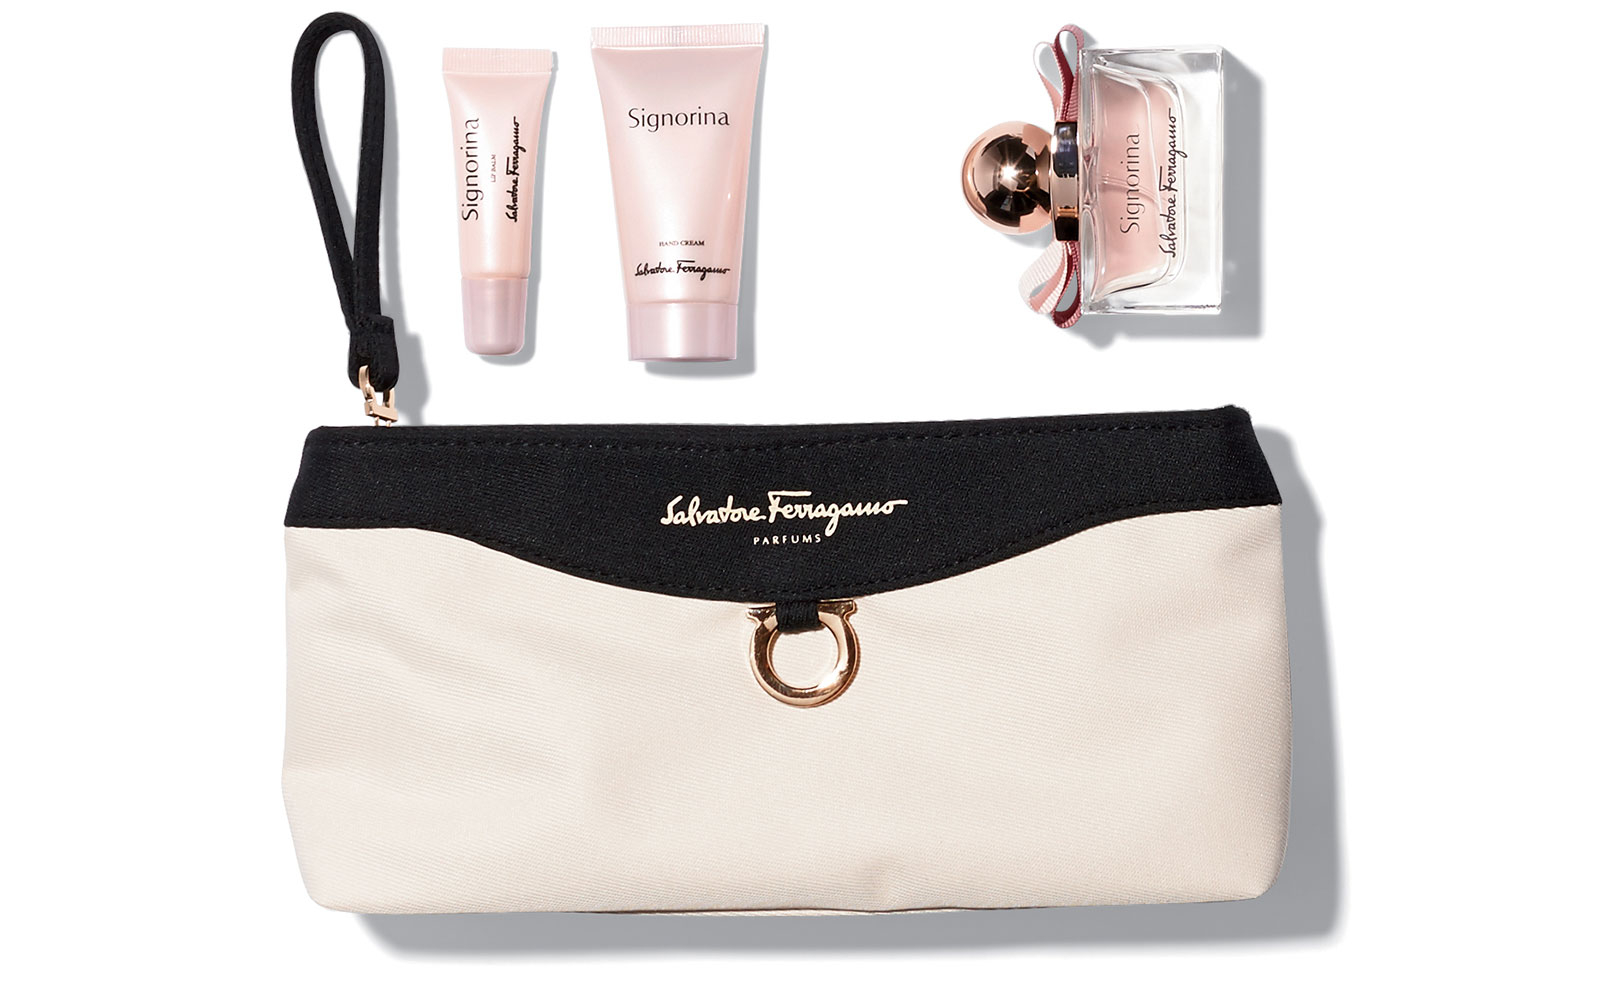 Singapore Airlines: First Class Ferragamo Amenity Kits